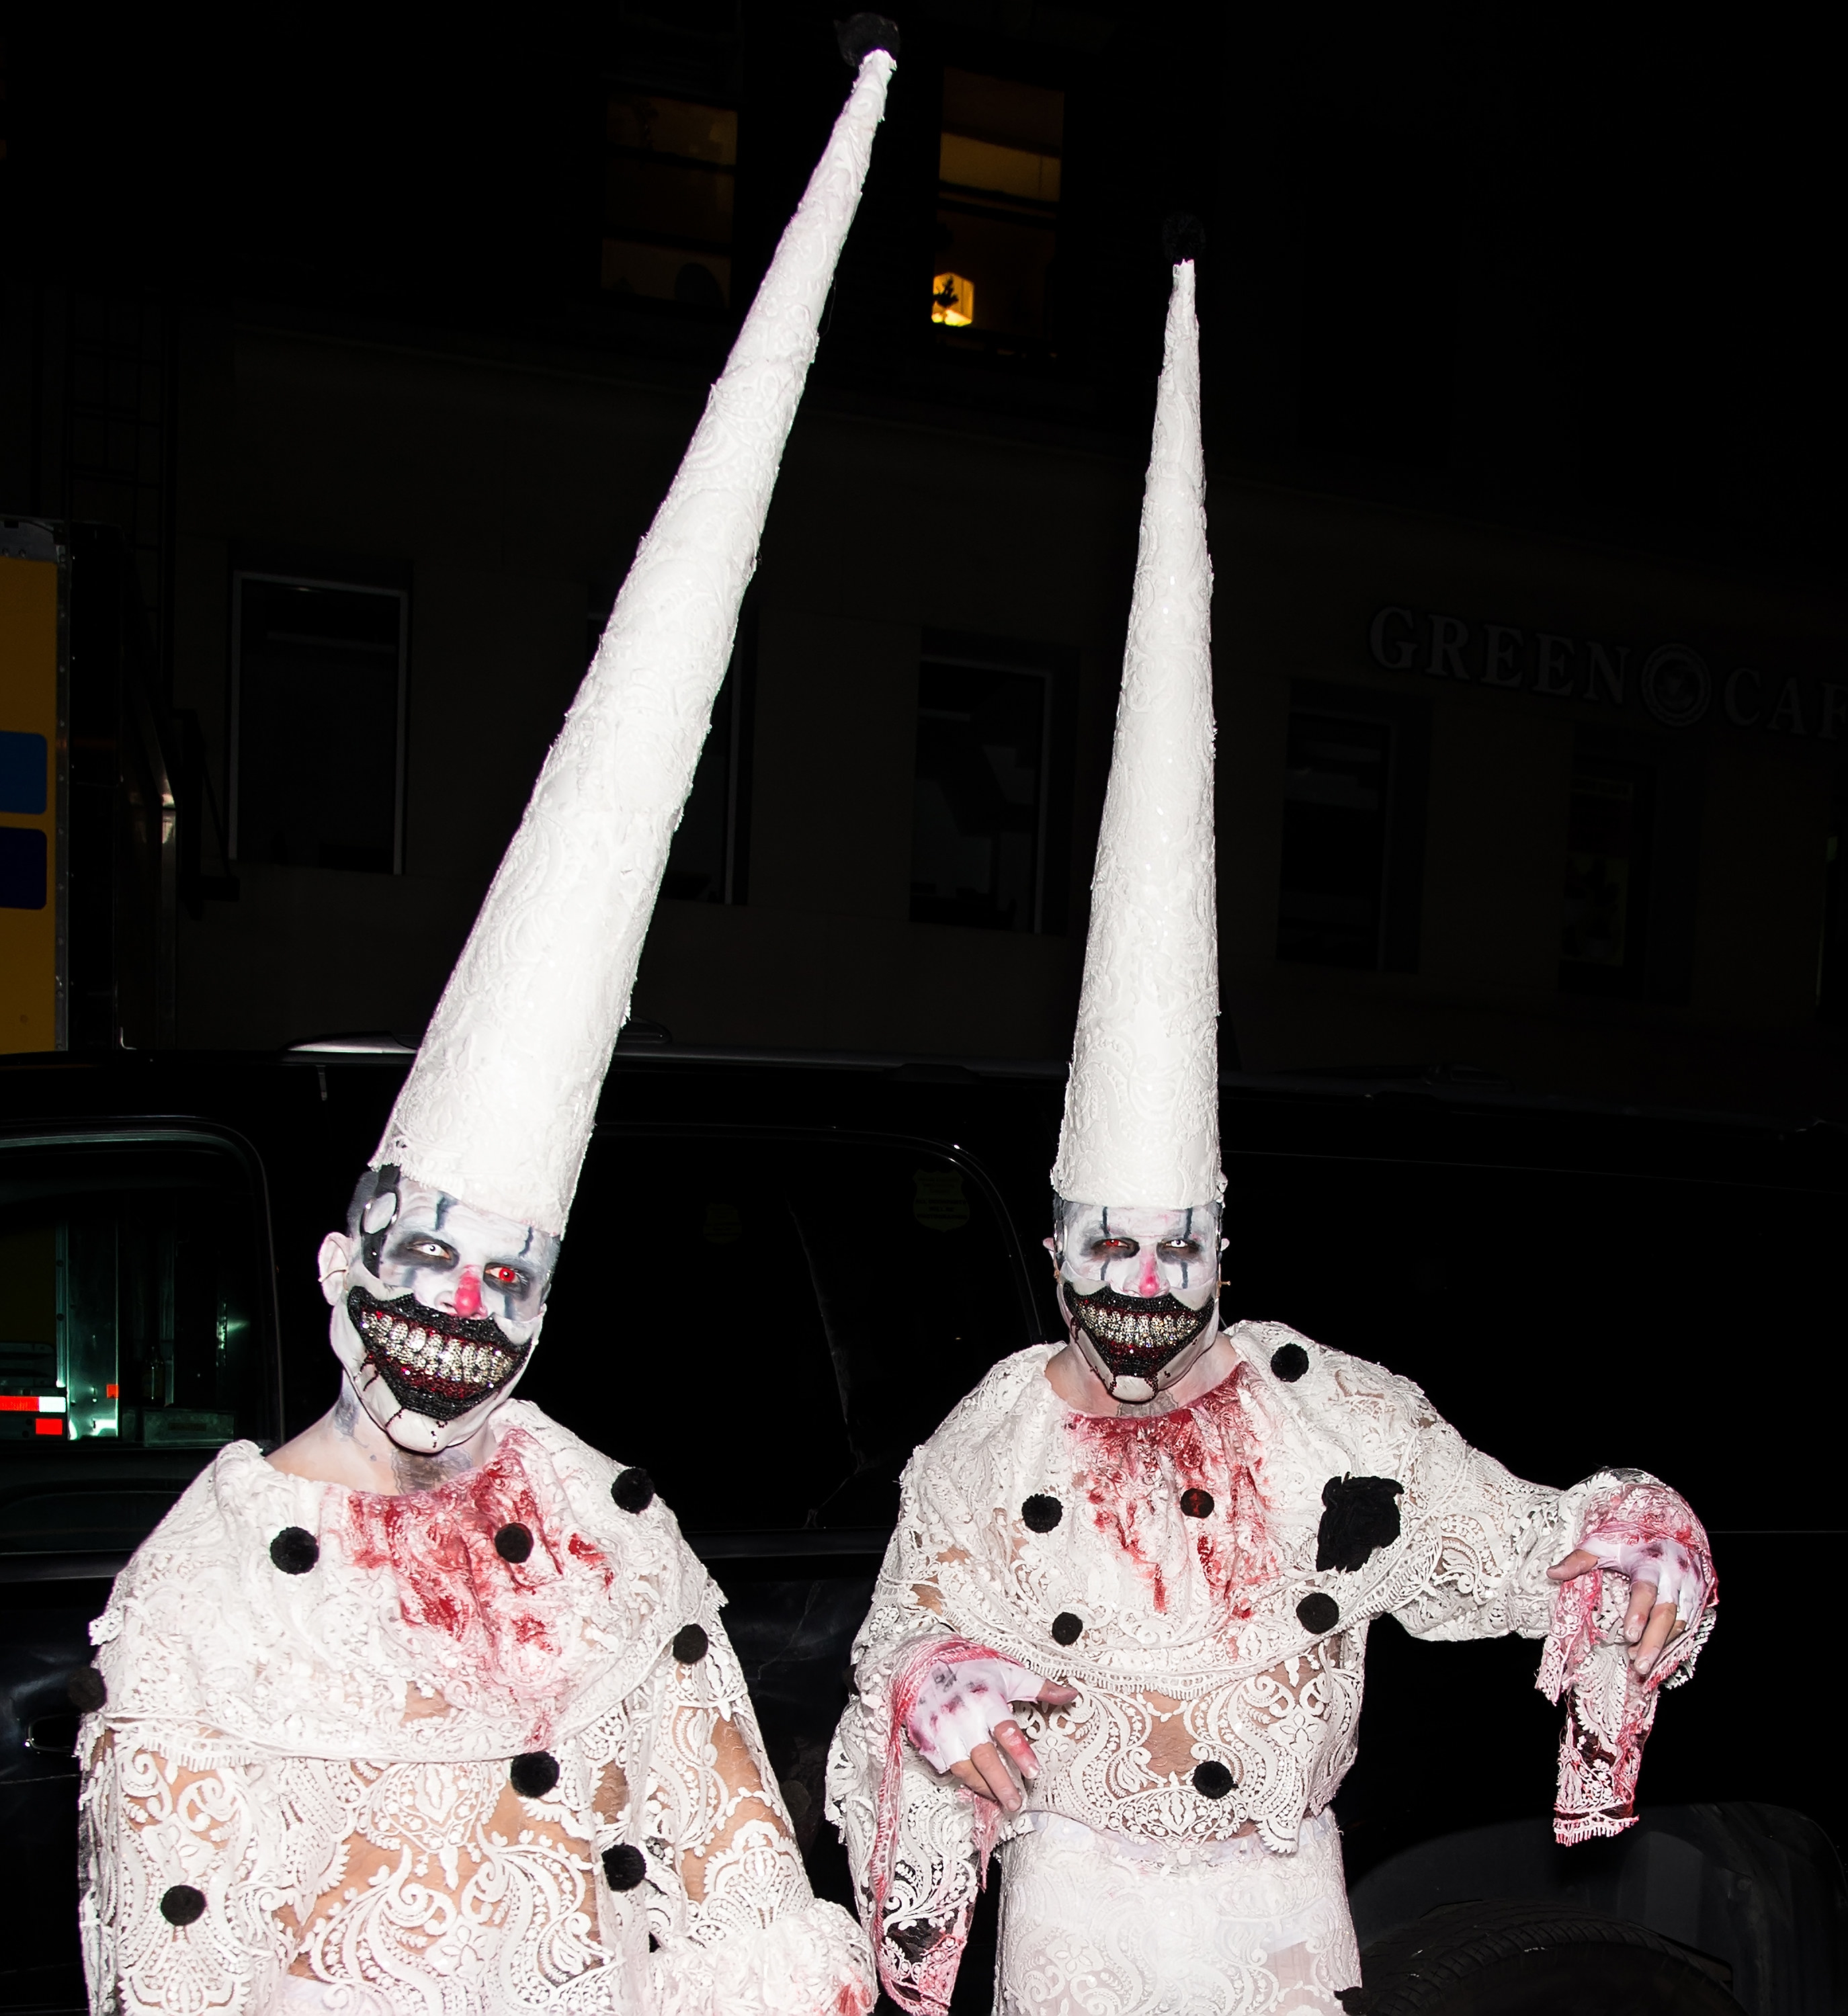 Two men dressed as very creepy clowns with lace suits and pointy hats.